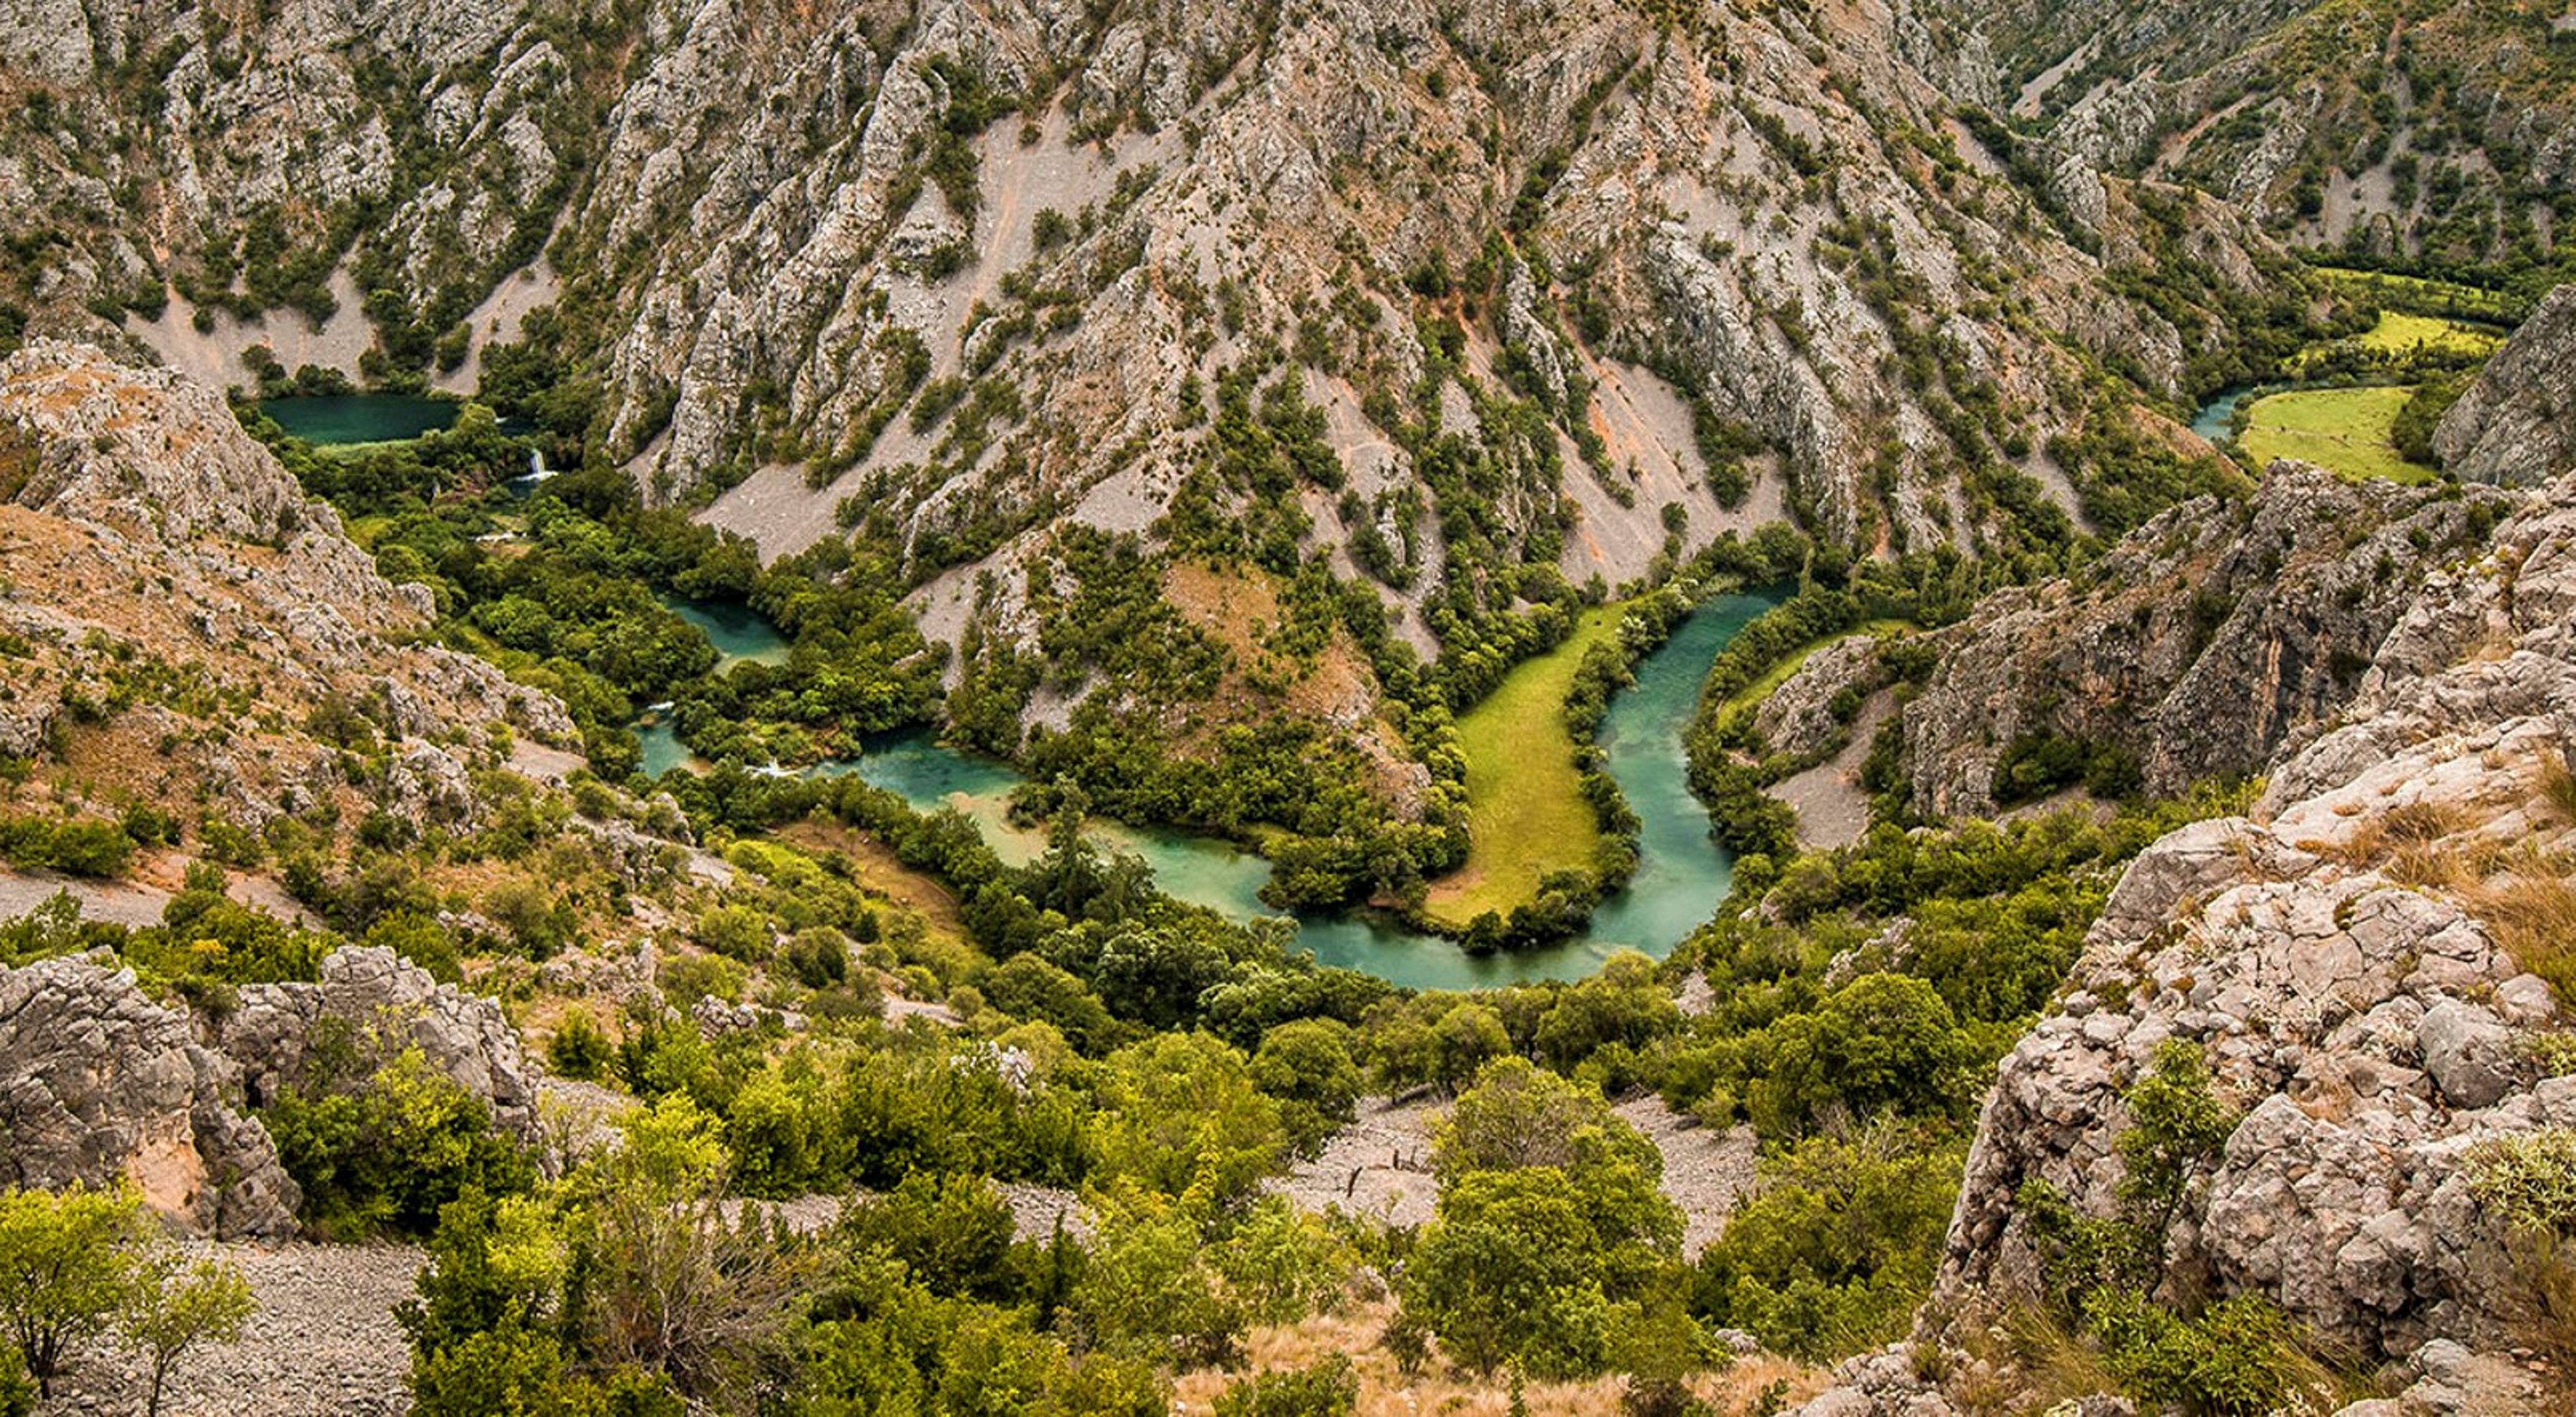 The winding Krupa River makes its way through Croatia.